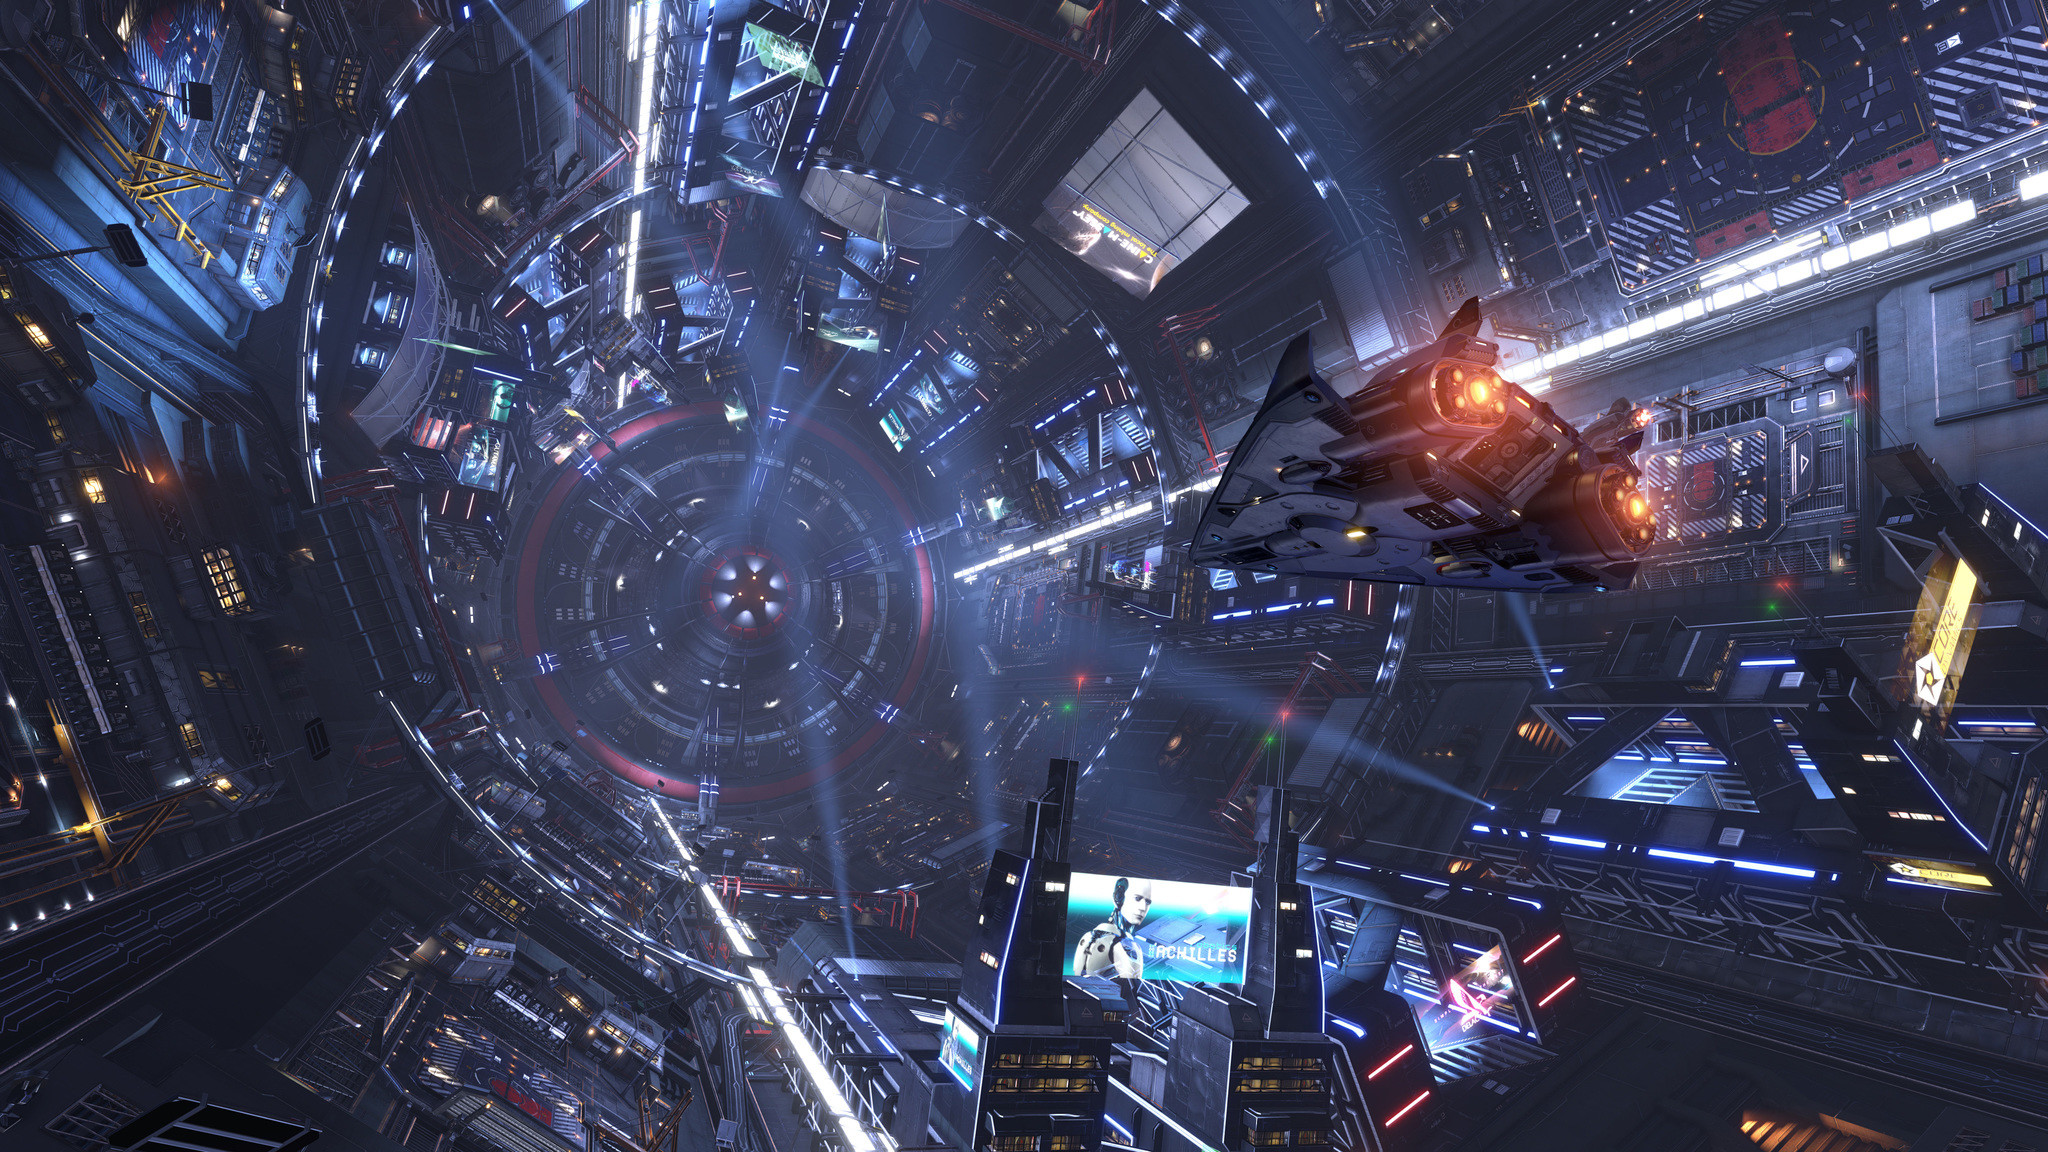 2048x1152 elite-dangerous-ps4-4k-new.jpg